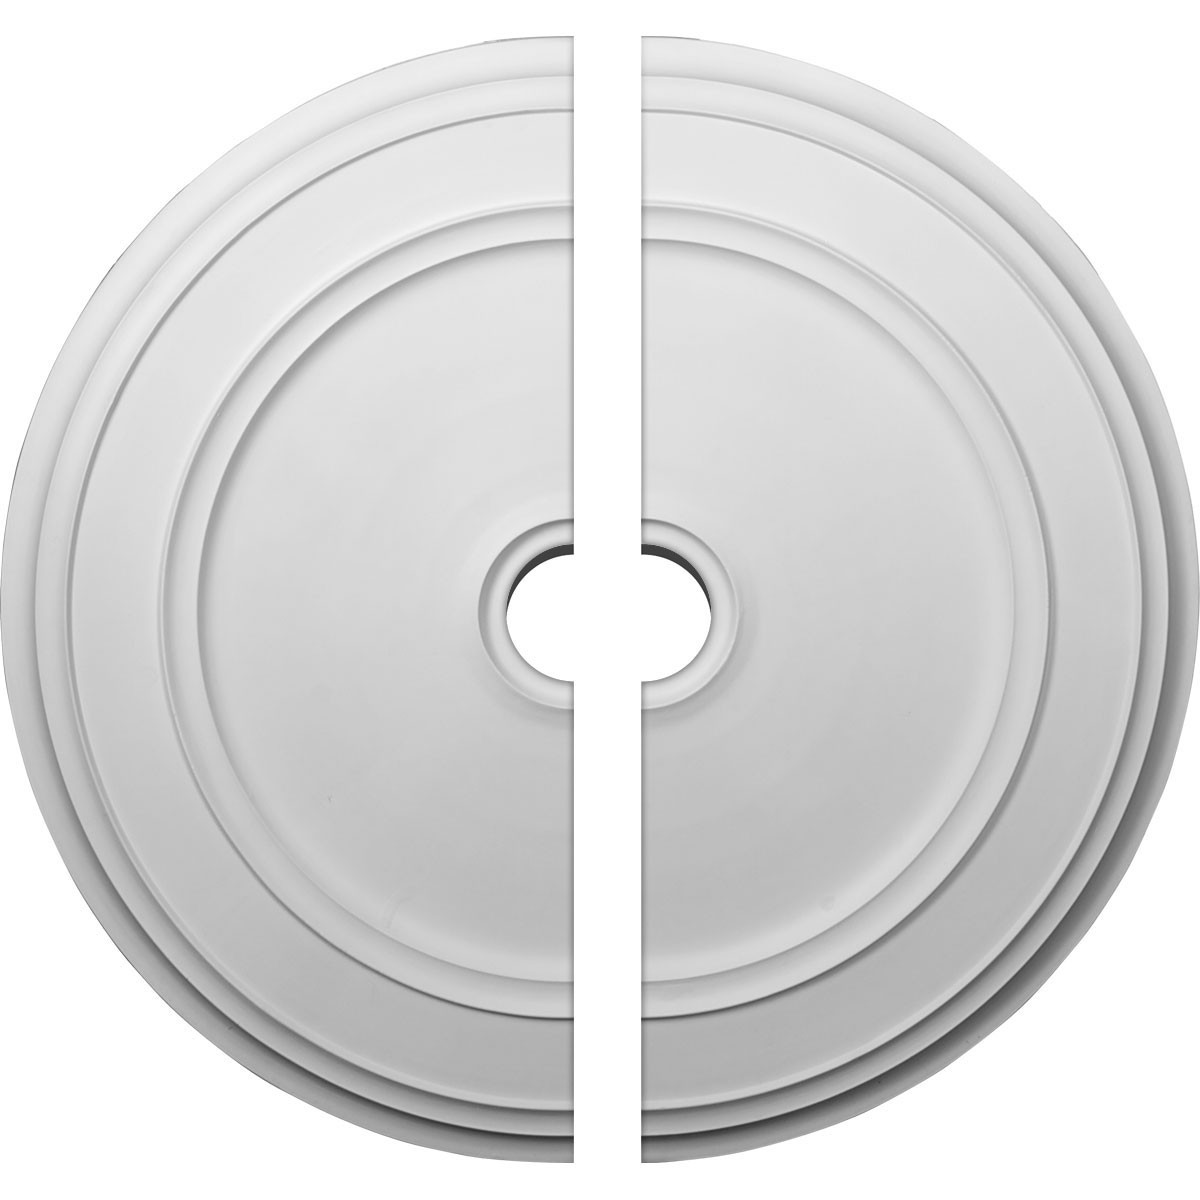 """EM-CM41CL2 - 41 1/8""""OD x 4""""ID x 2 1/8""""P Classic Ceiling Medallion, Two Piece (Fits Canopies up to 5 1/2"""")"""